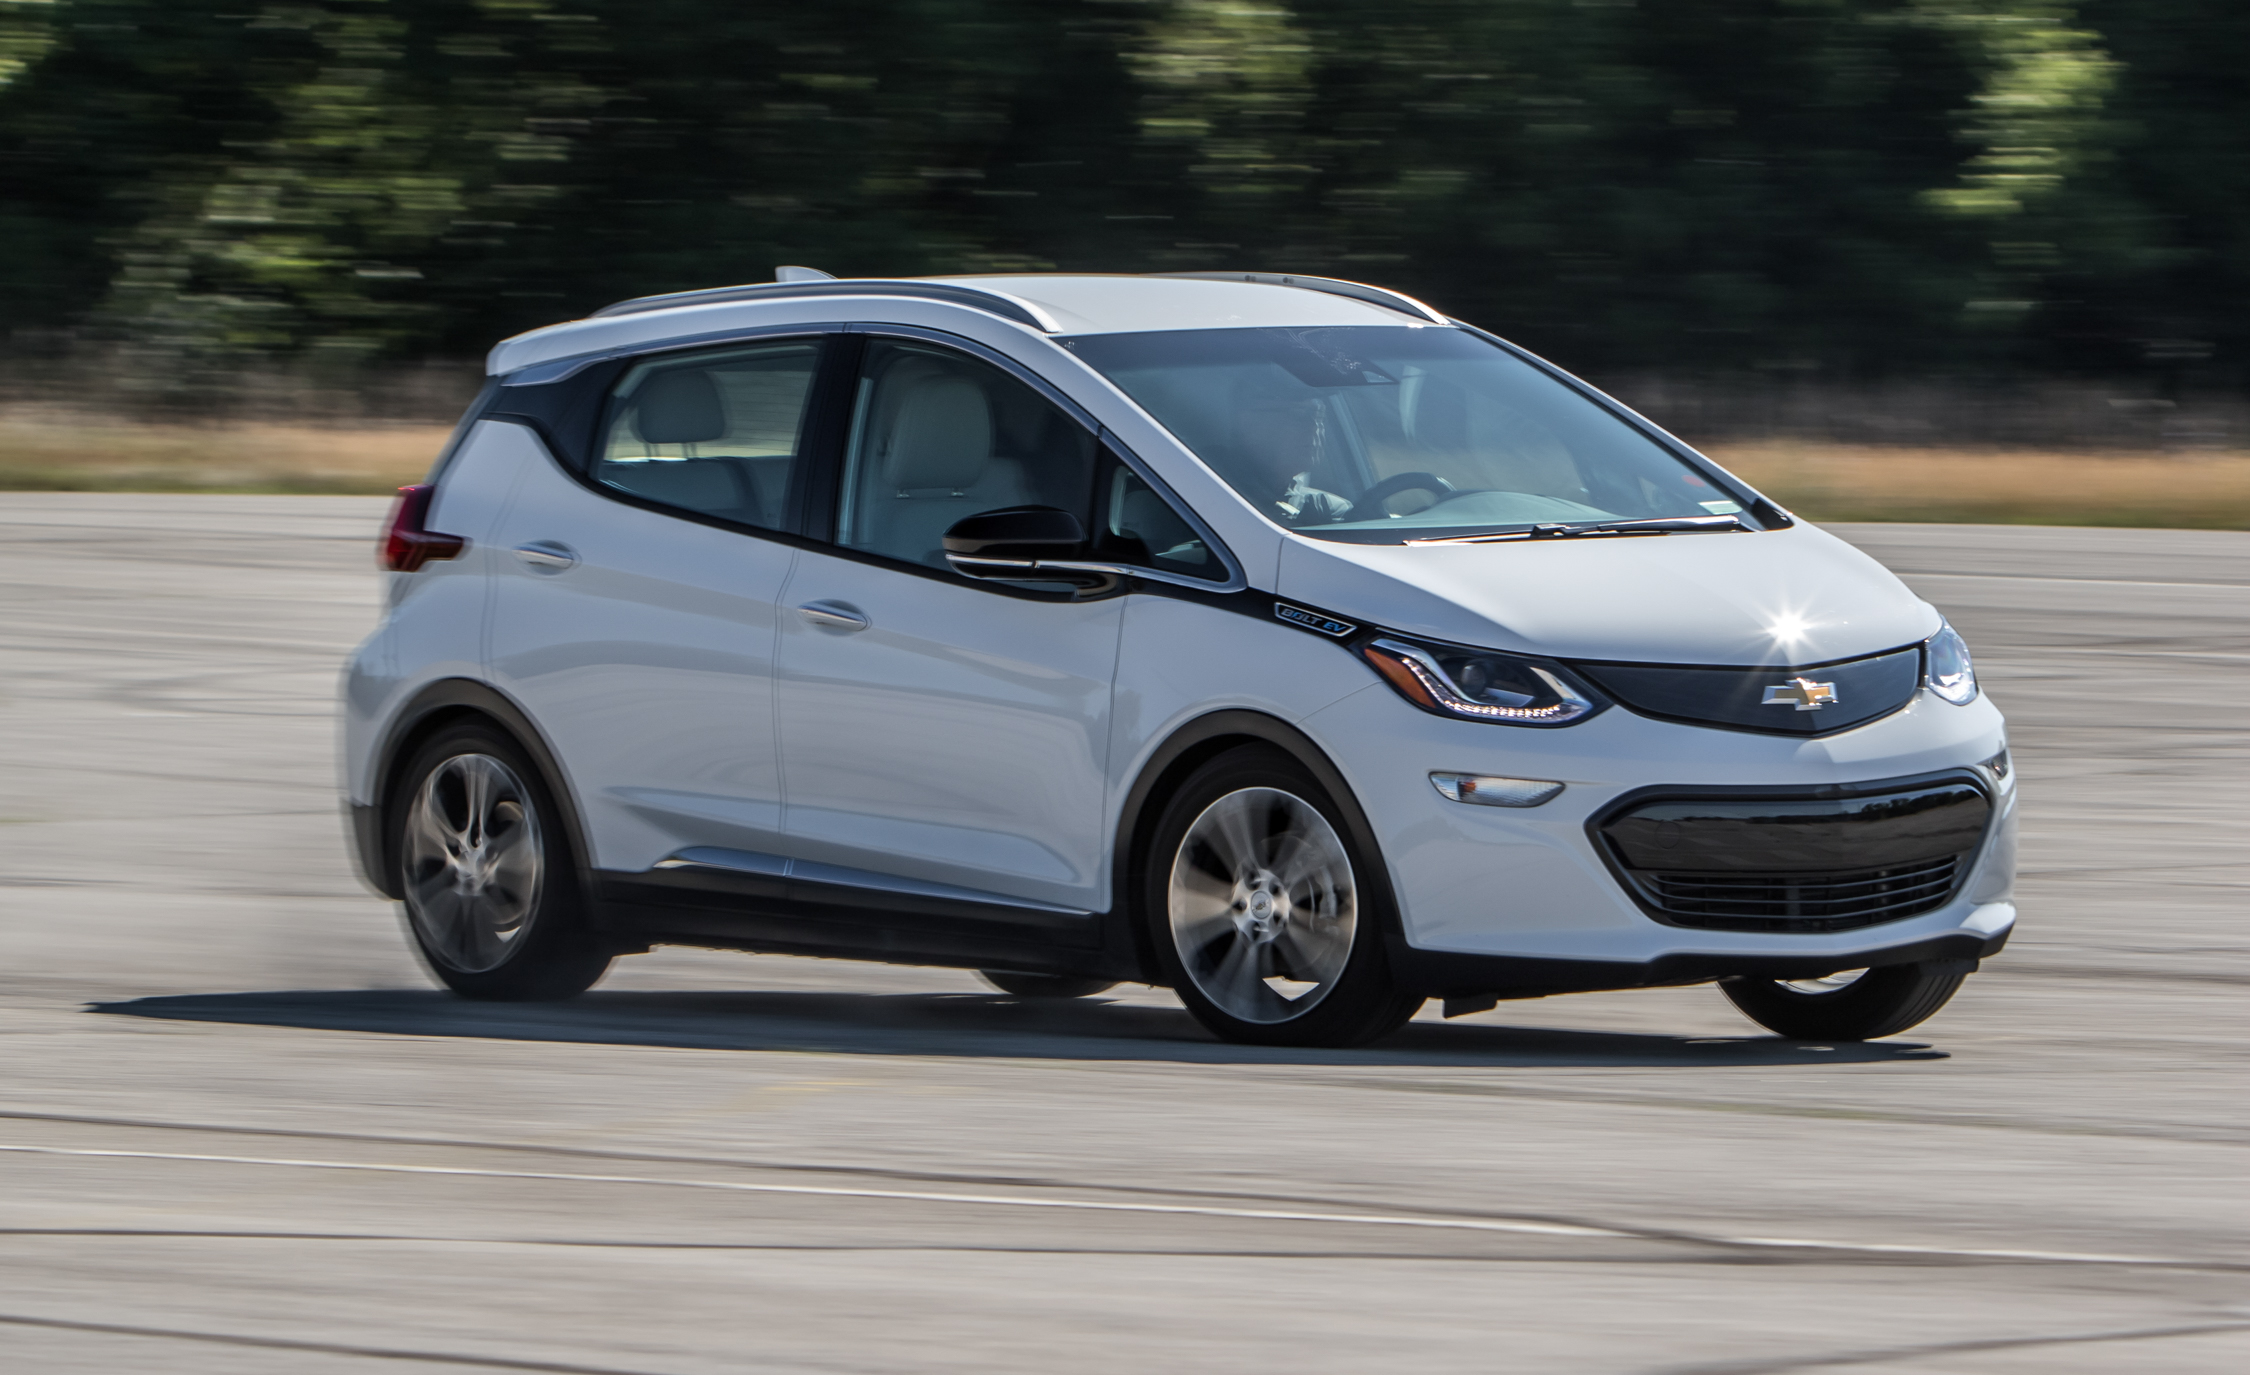 2017 Chevrolet Bolt Ev Test Drive (View 5 of 12)